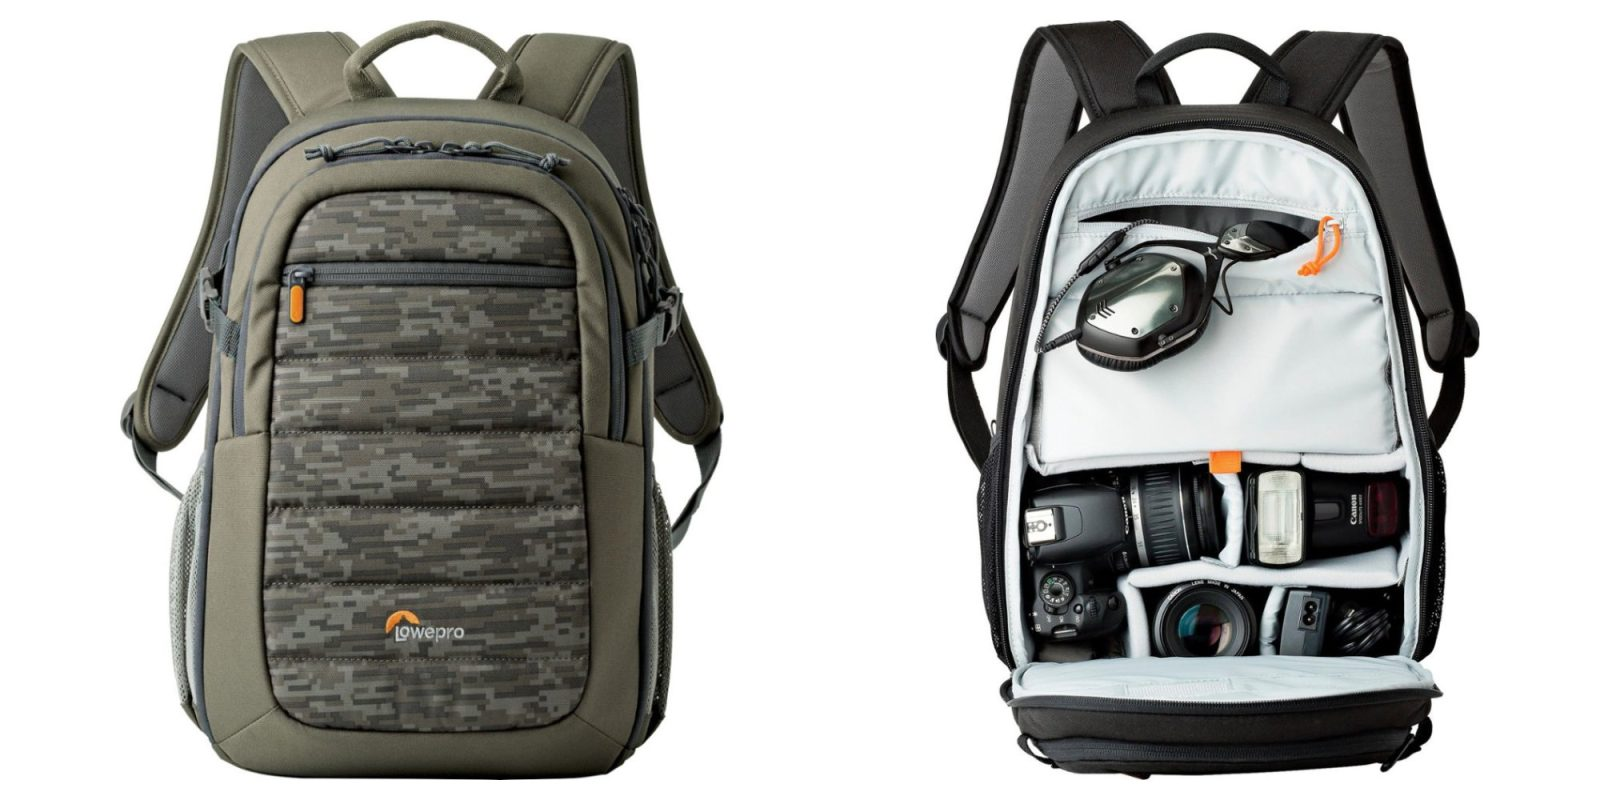 Lowepro's Tahoe Backpack is ready for an iPad, DSLR, lenses, and more: $32 (Reg. $50)